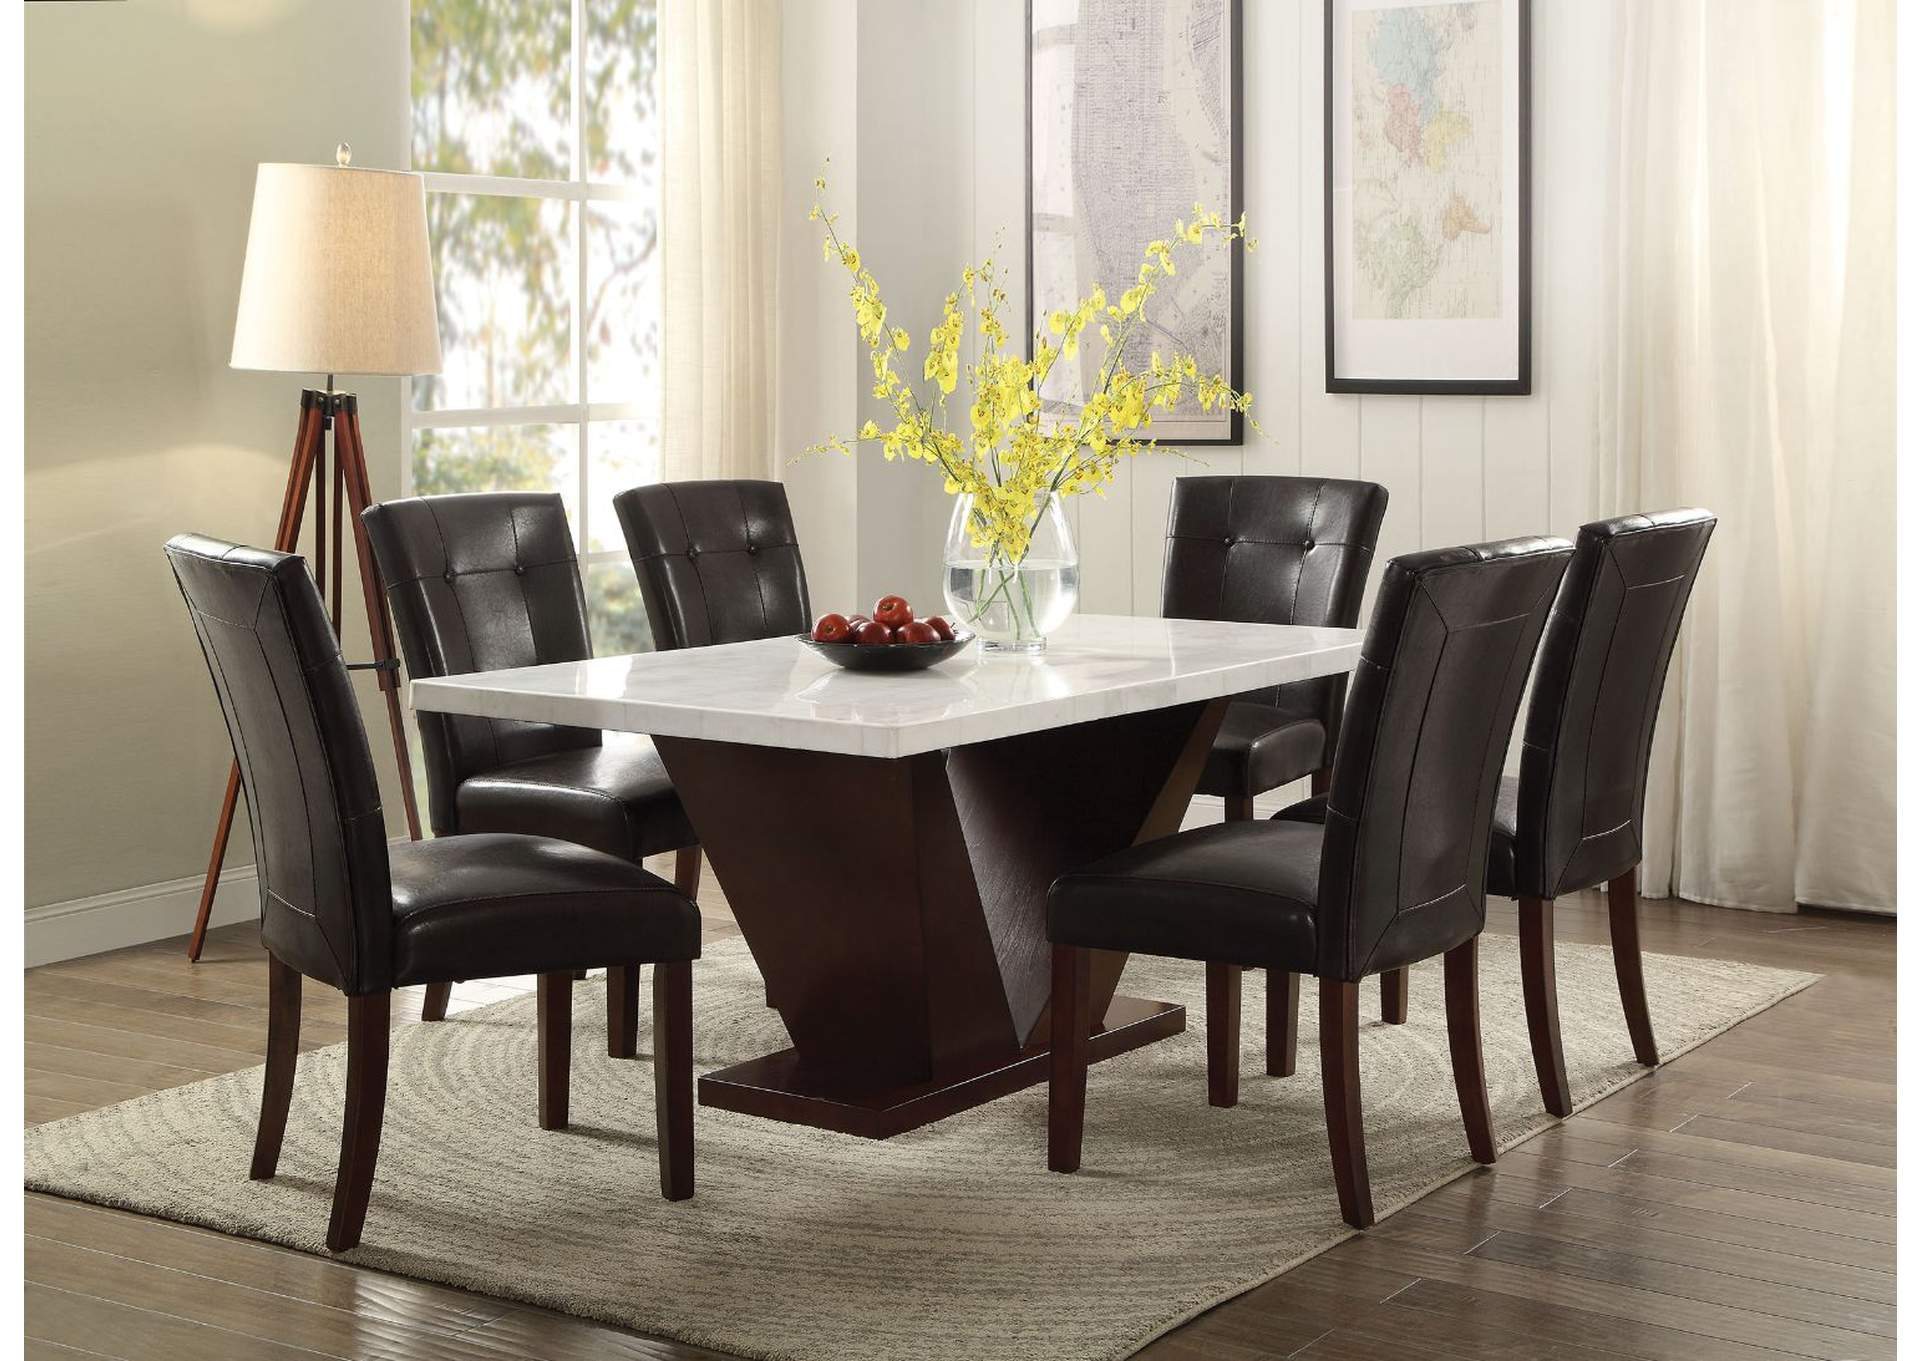 Forbes White Marble & Walnut Dining Table,Acme